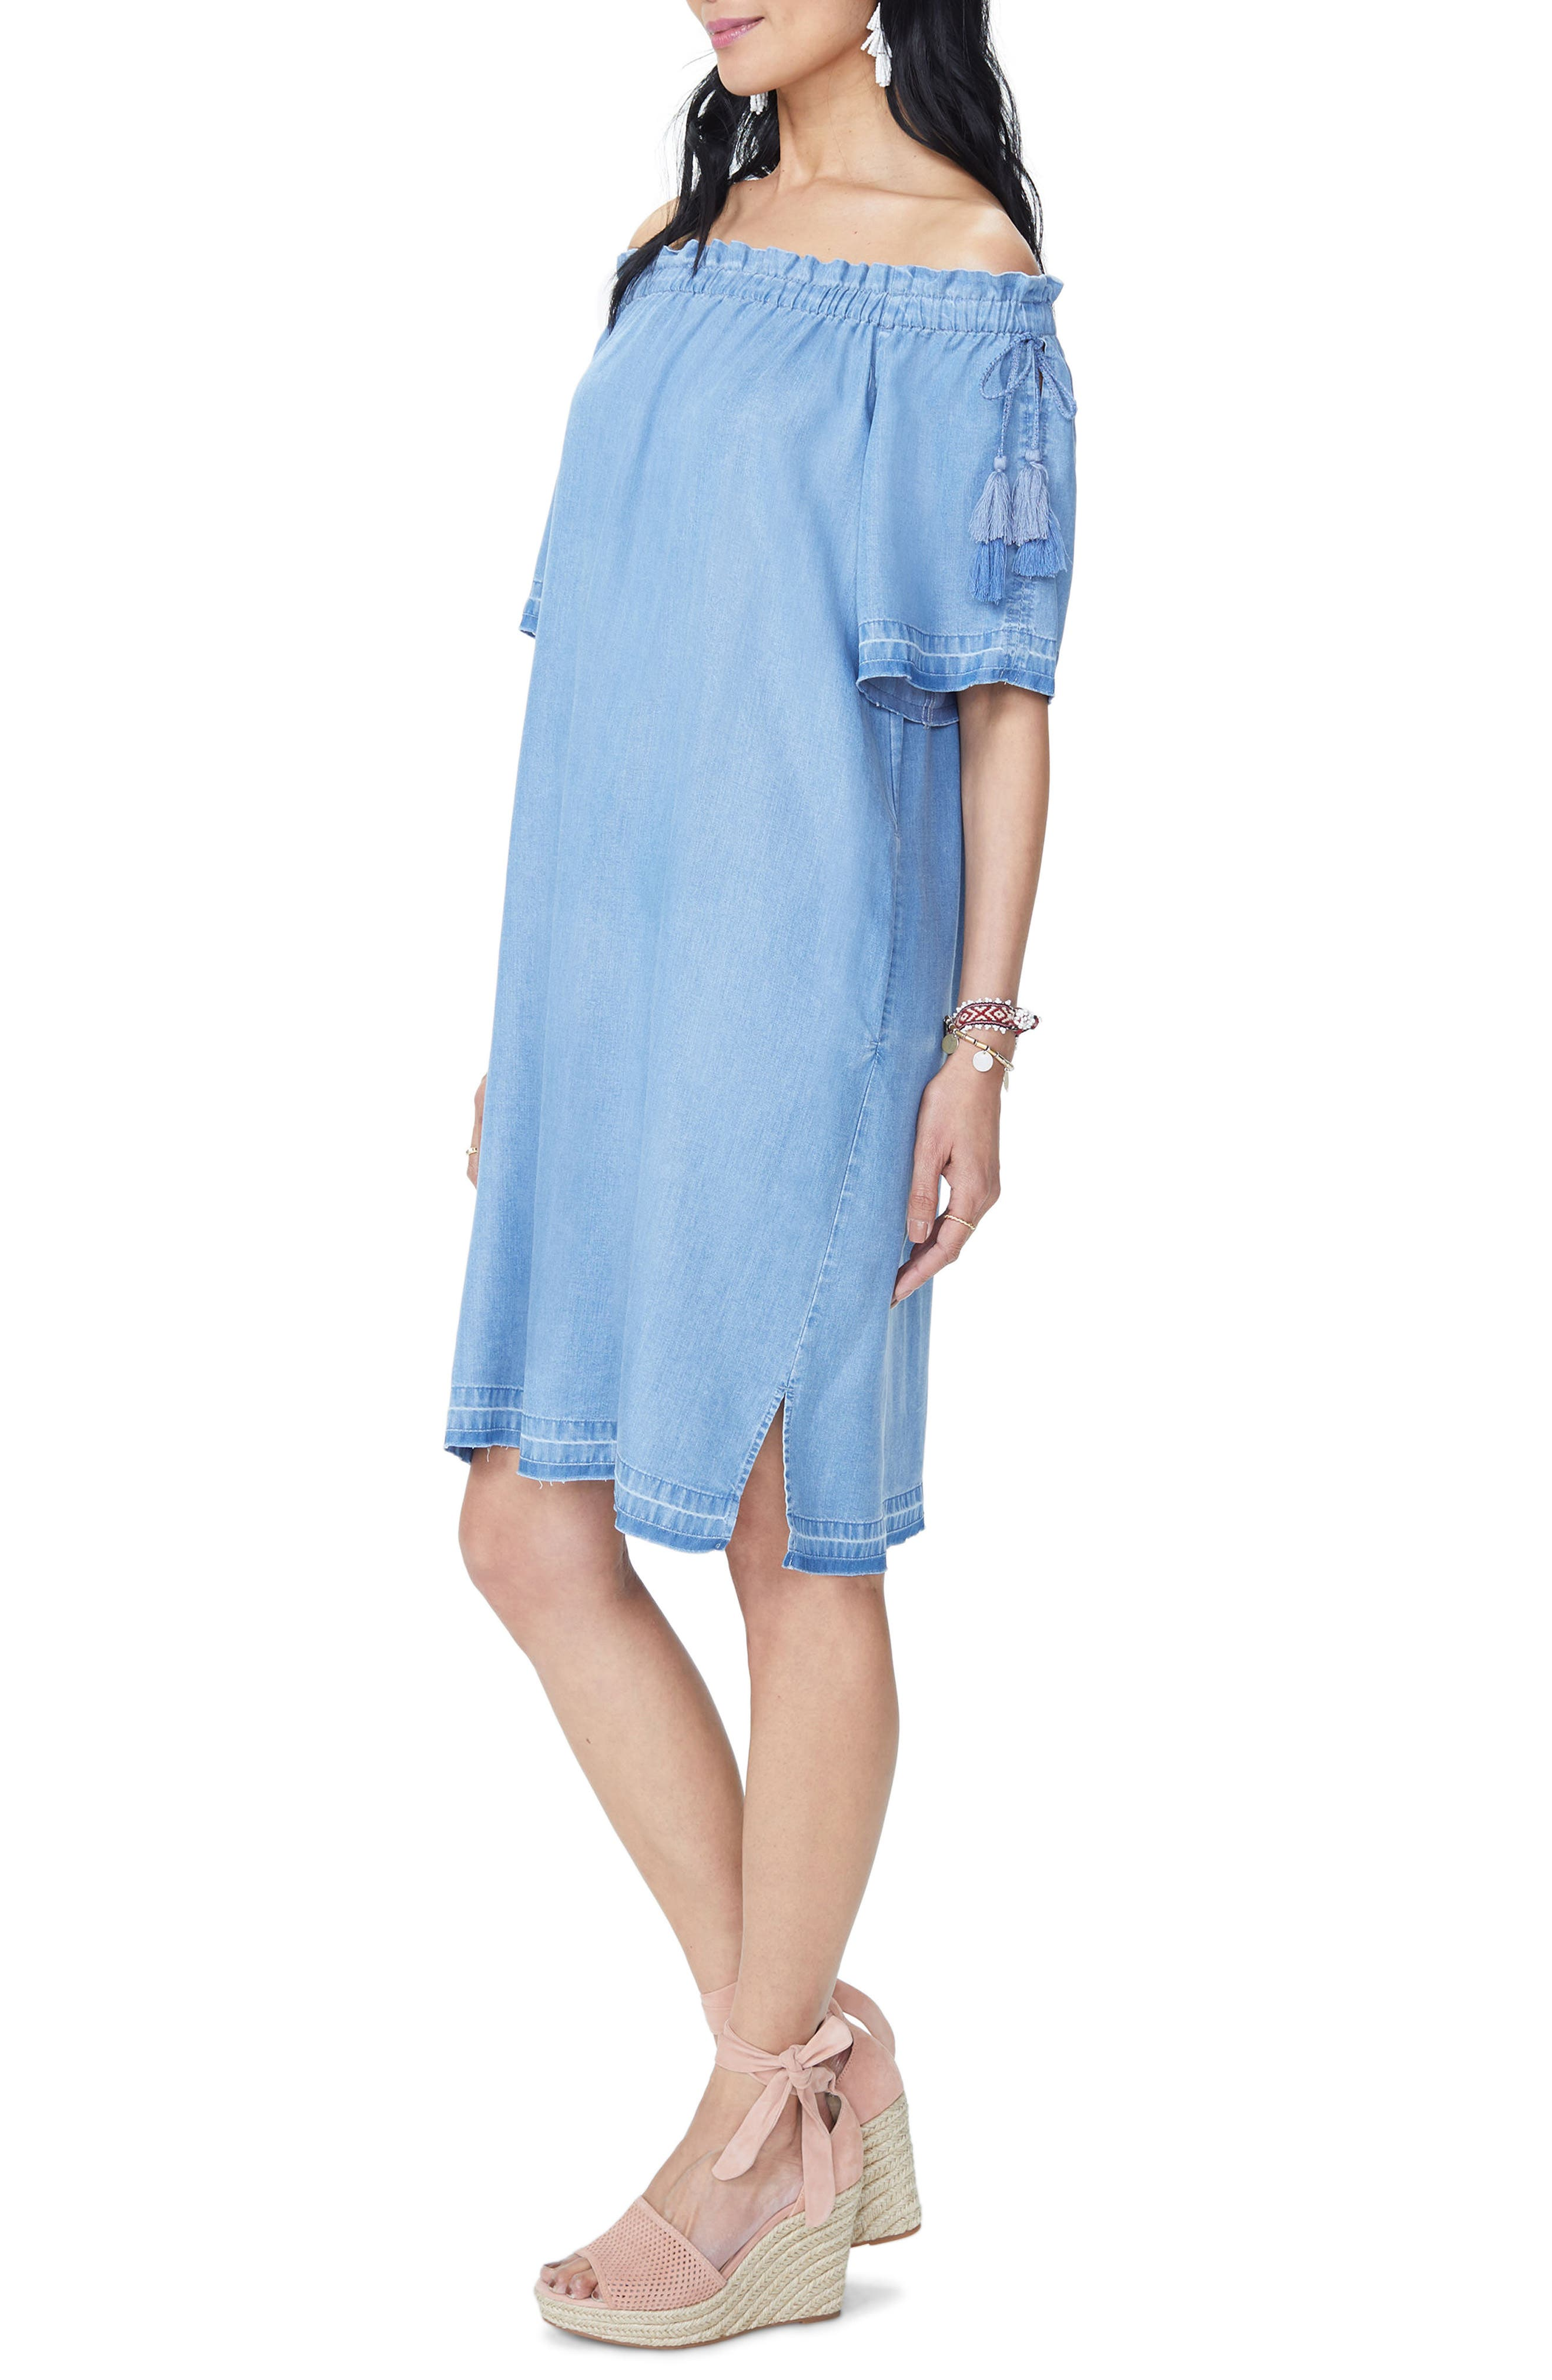 Off the Shoulder Tassel Tie Chambray Dress,                             Alternate thumbnail 3, color,                             Low Tide Wash